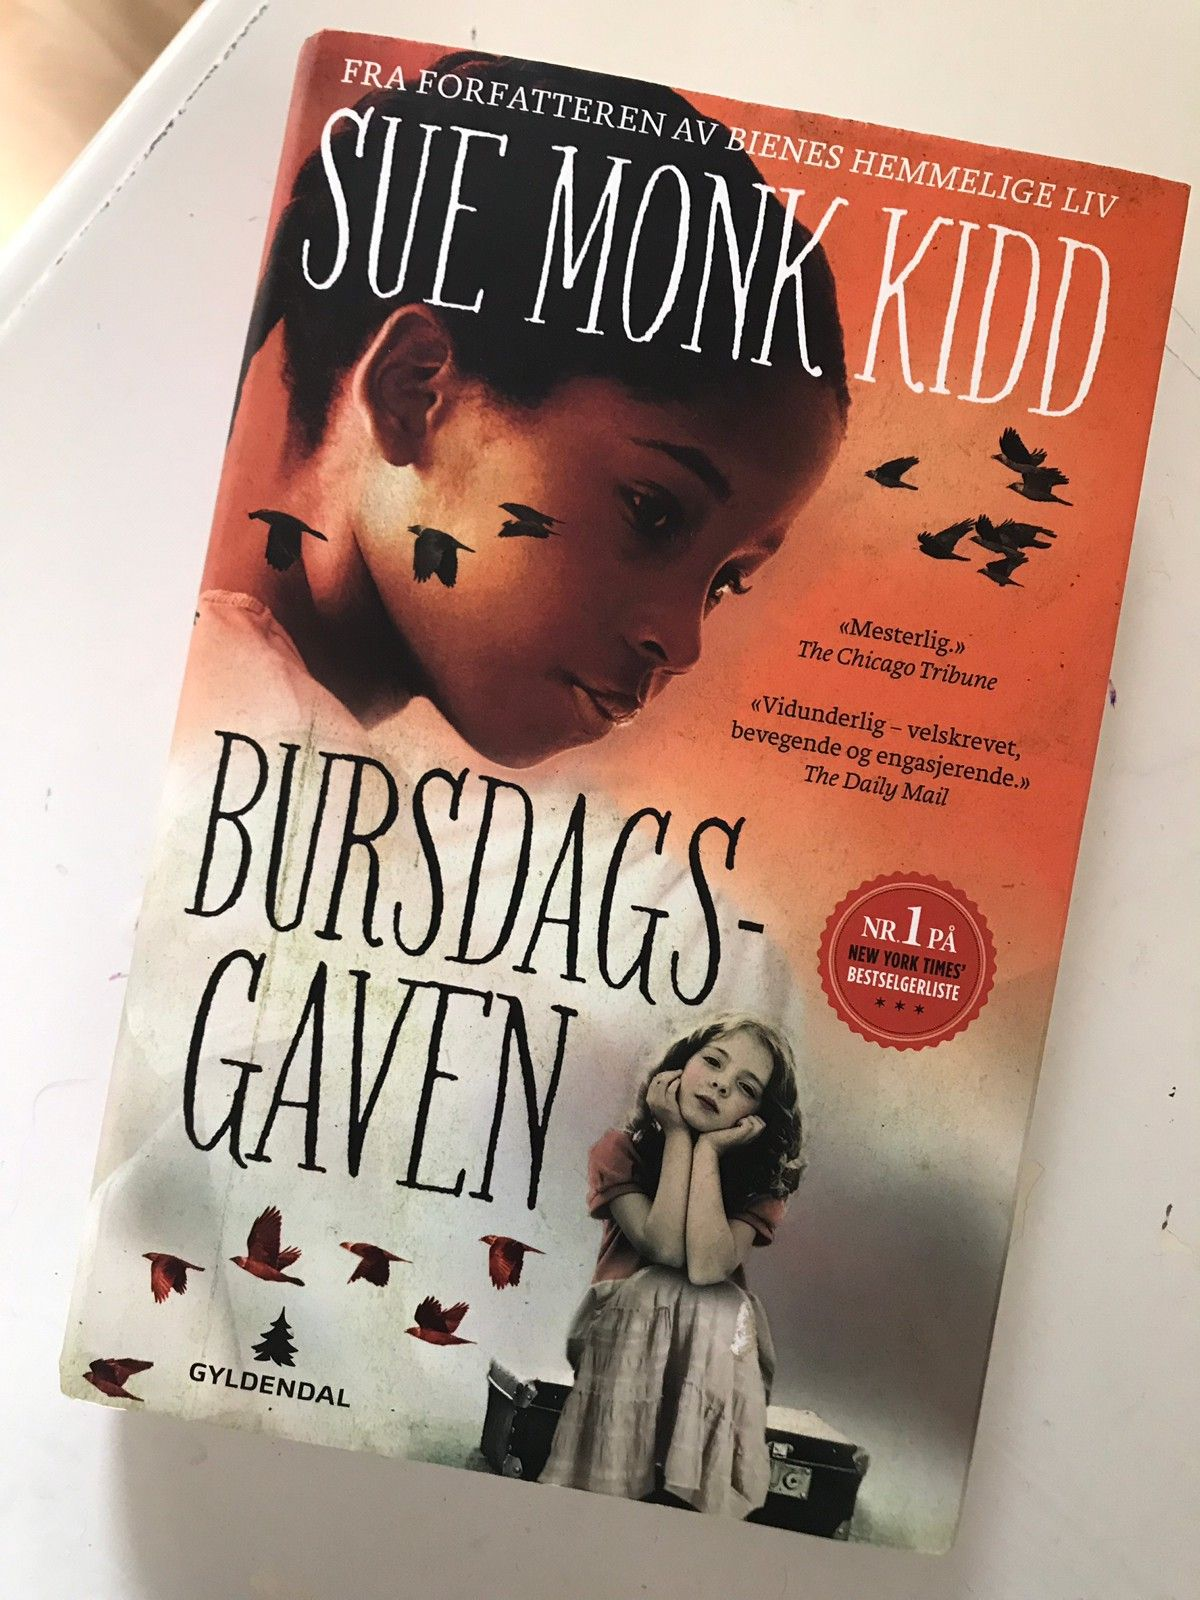 sue monk kidd bursdagsgaven